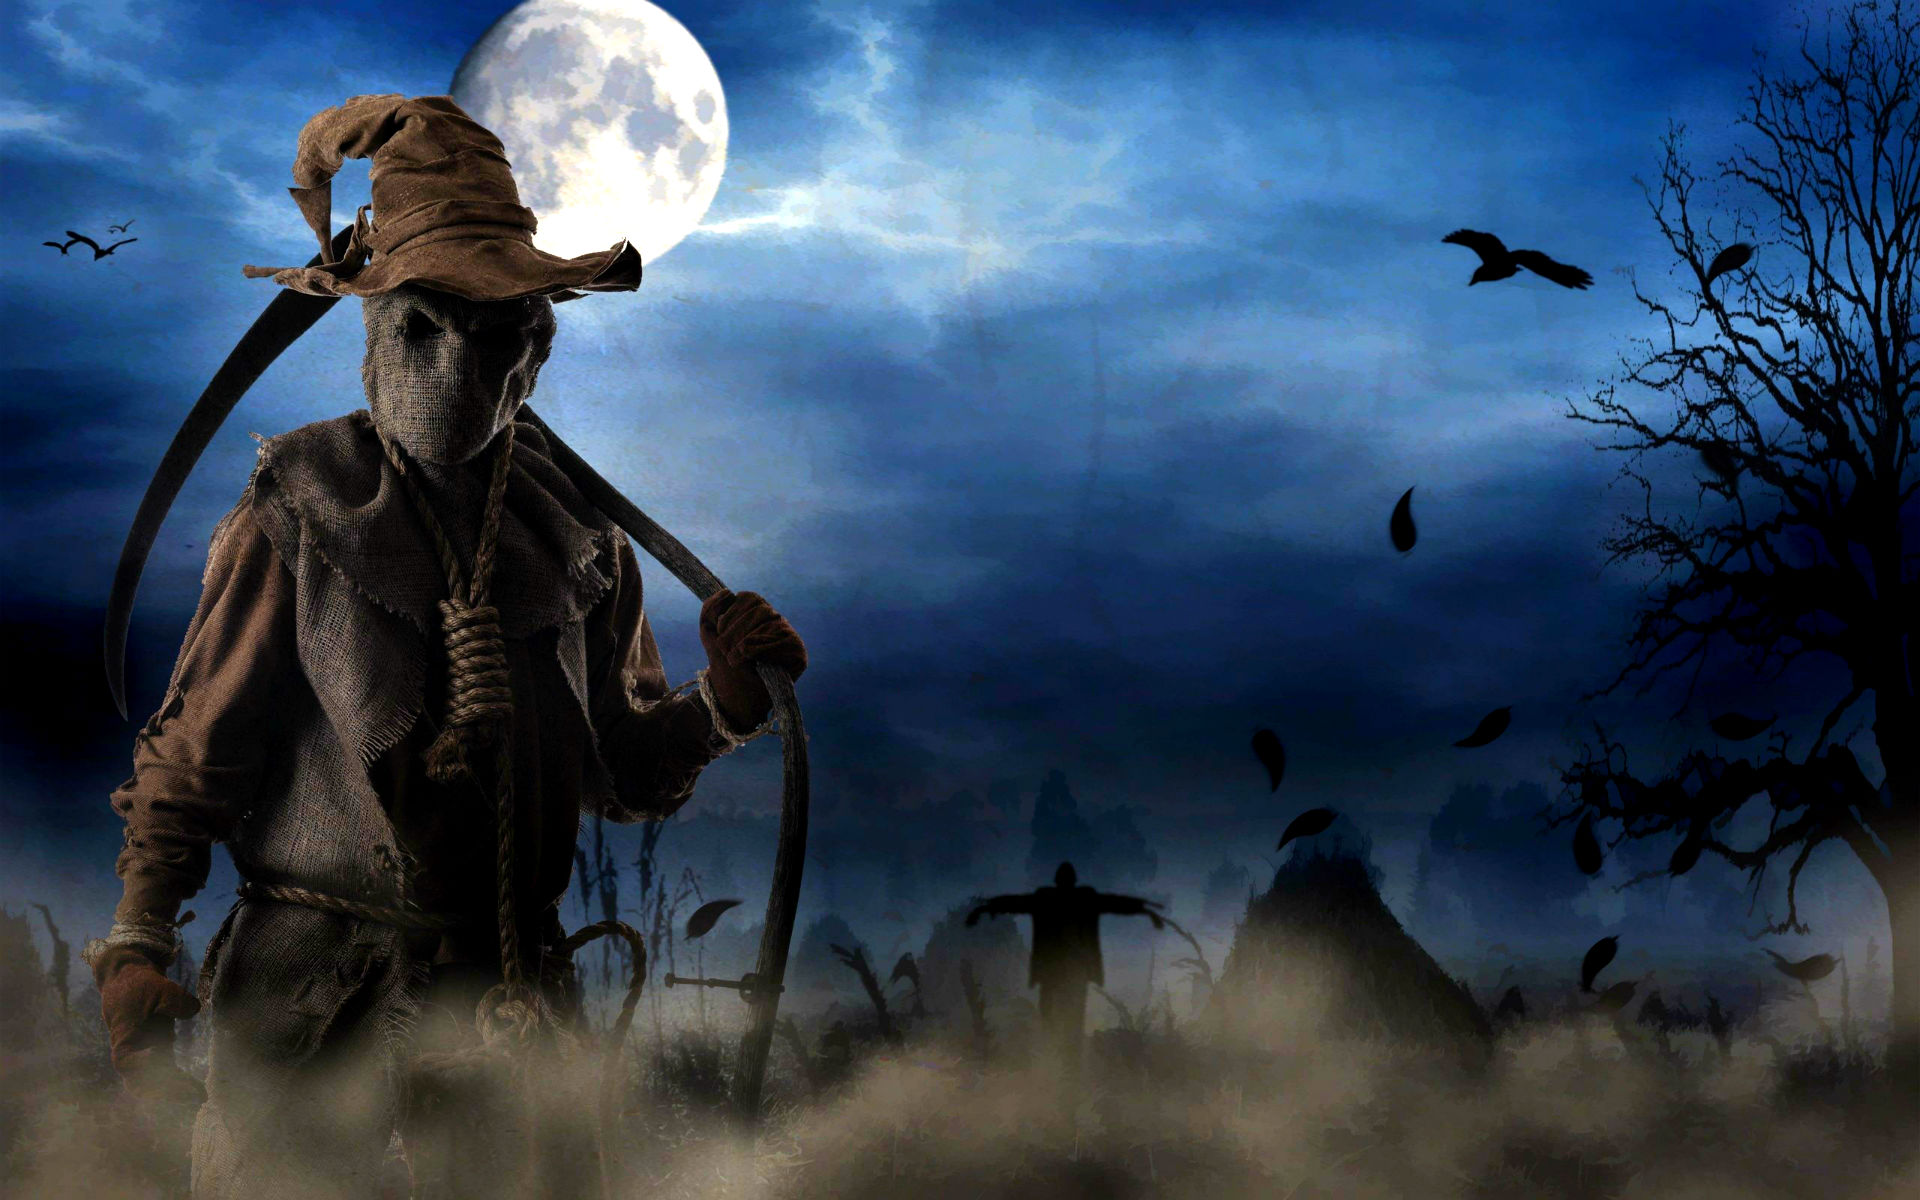 eerie halloween | Scary Halloween Wallpaper   Download free 'Scary